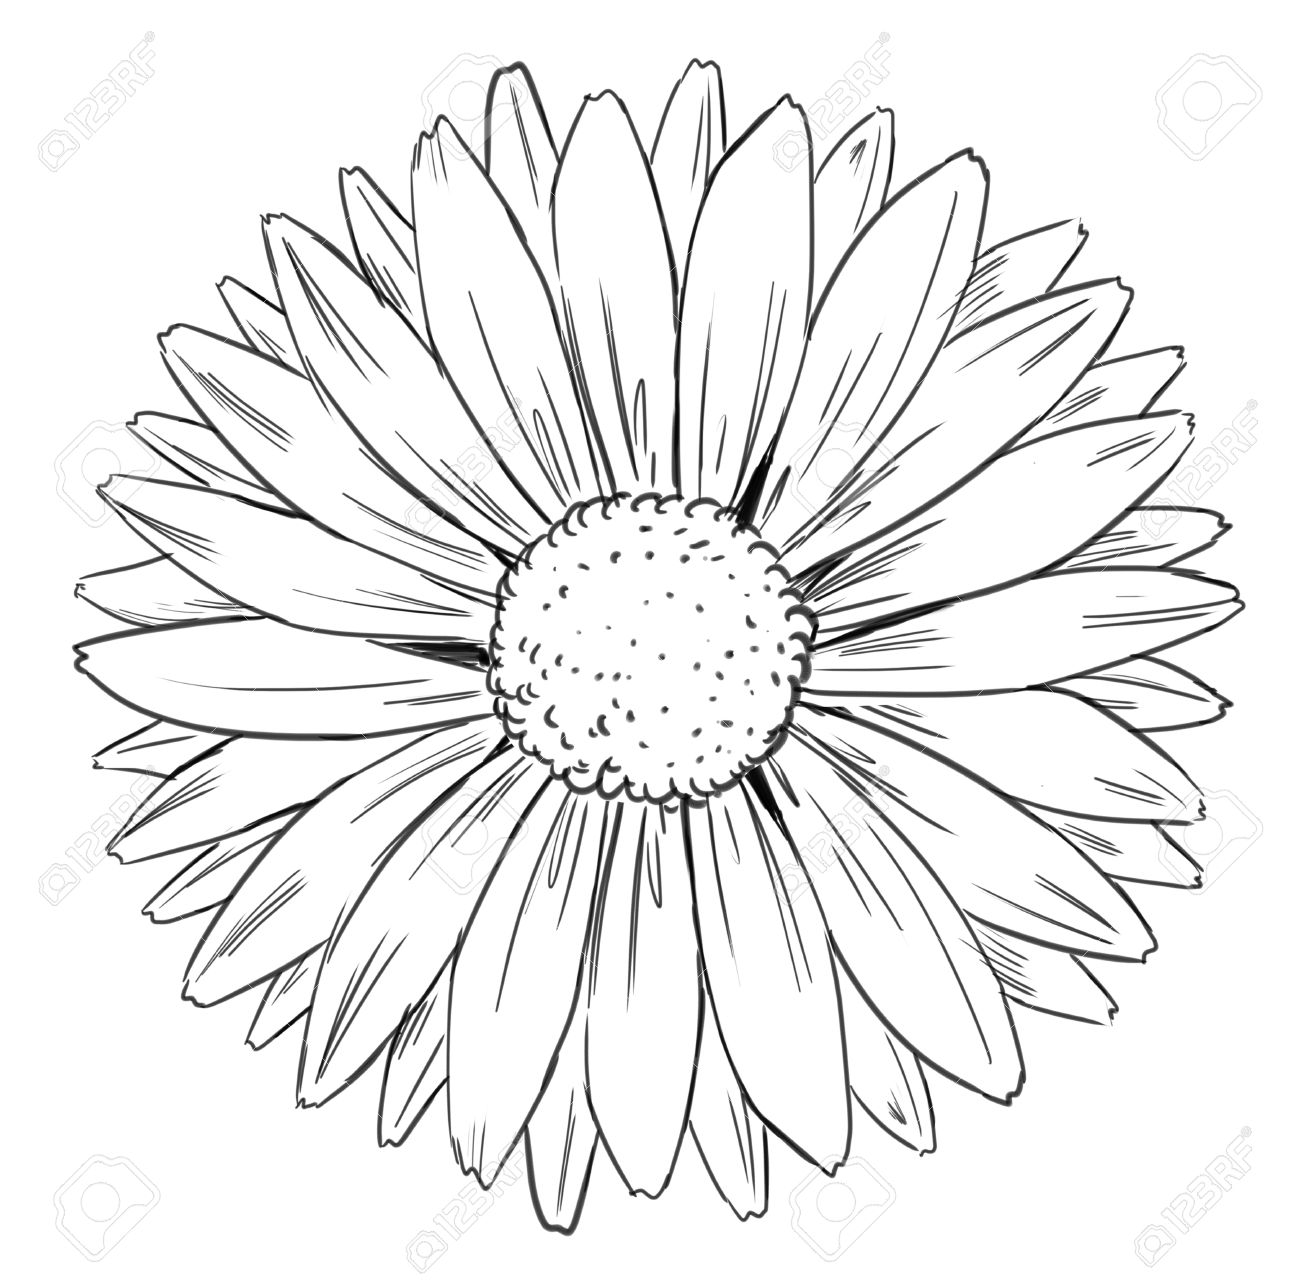 1300x1280 Daisy Sunflower Images, Stock Pictures, Royalty Free Daisy